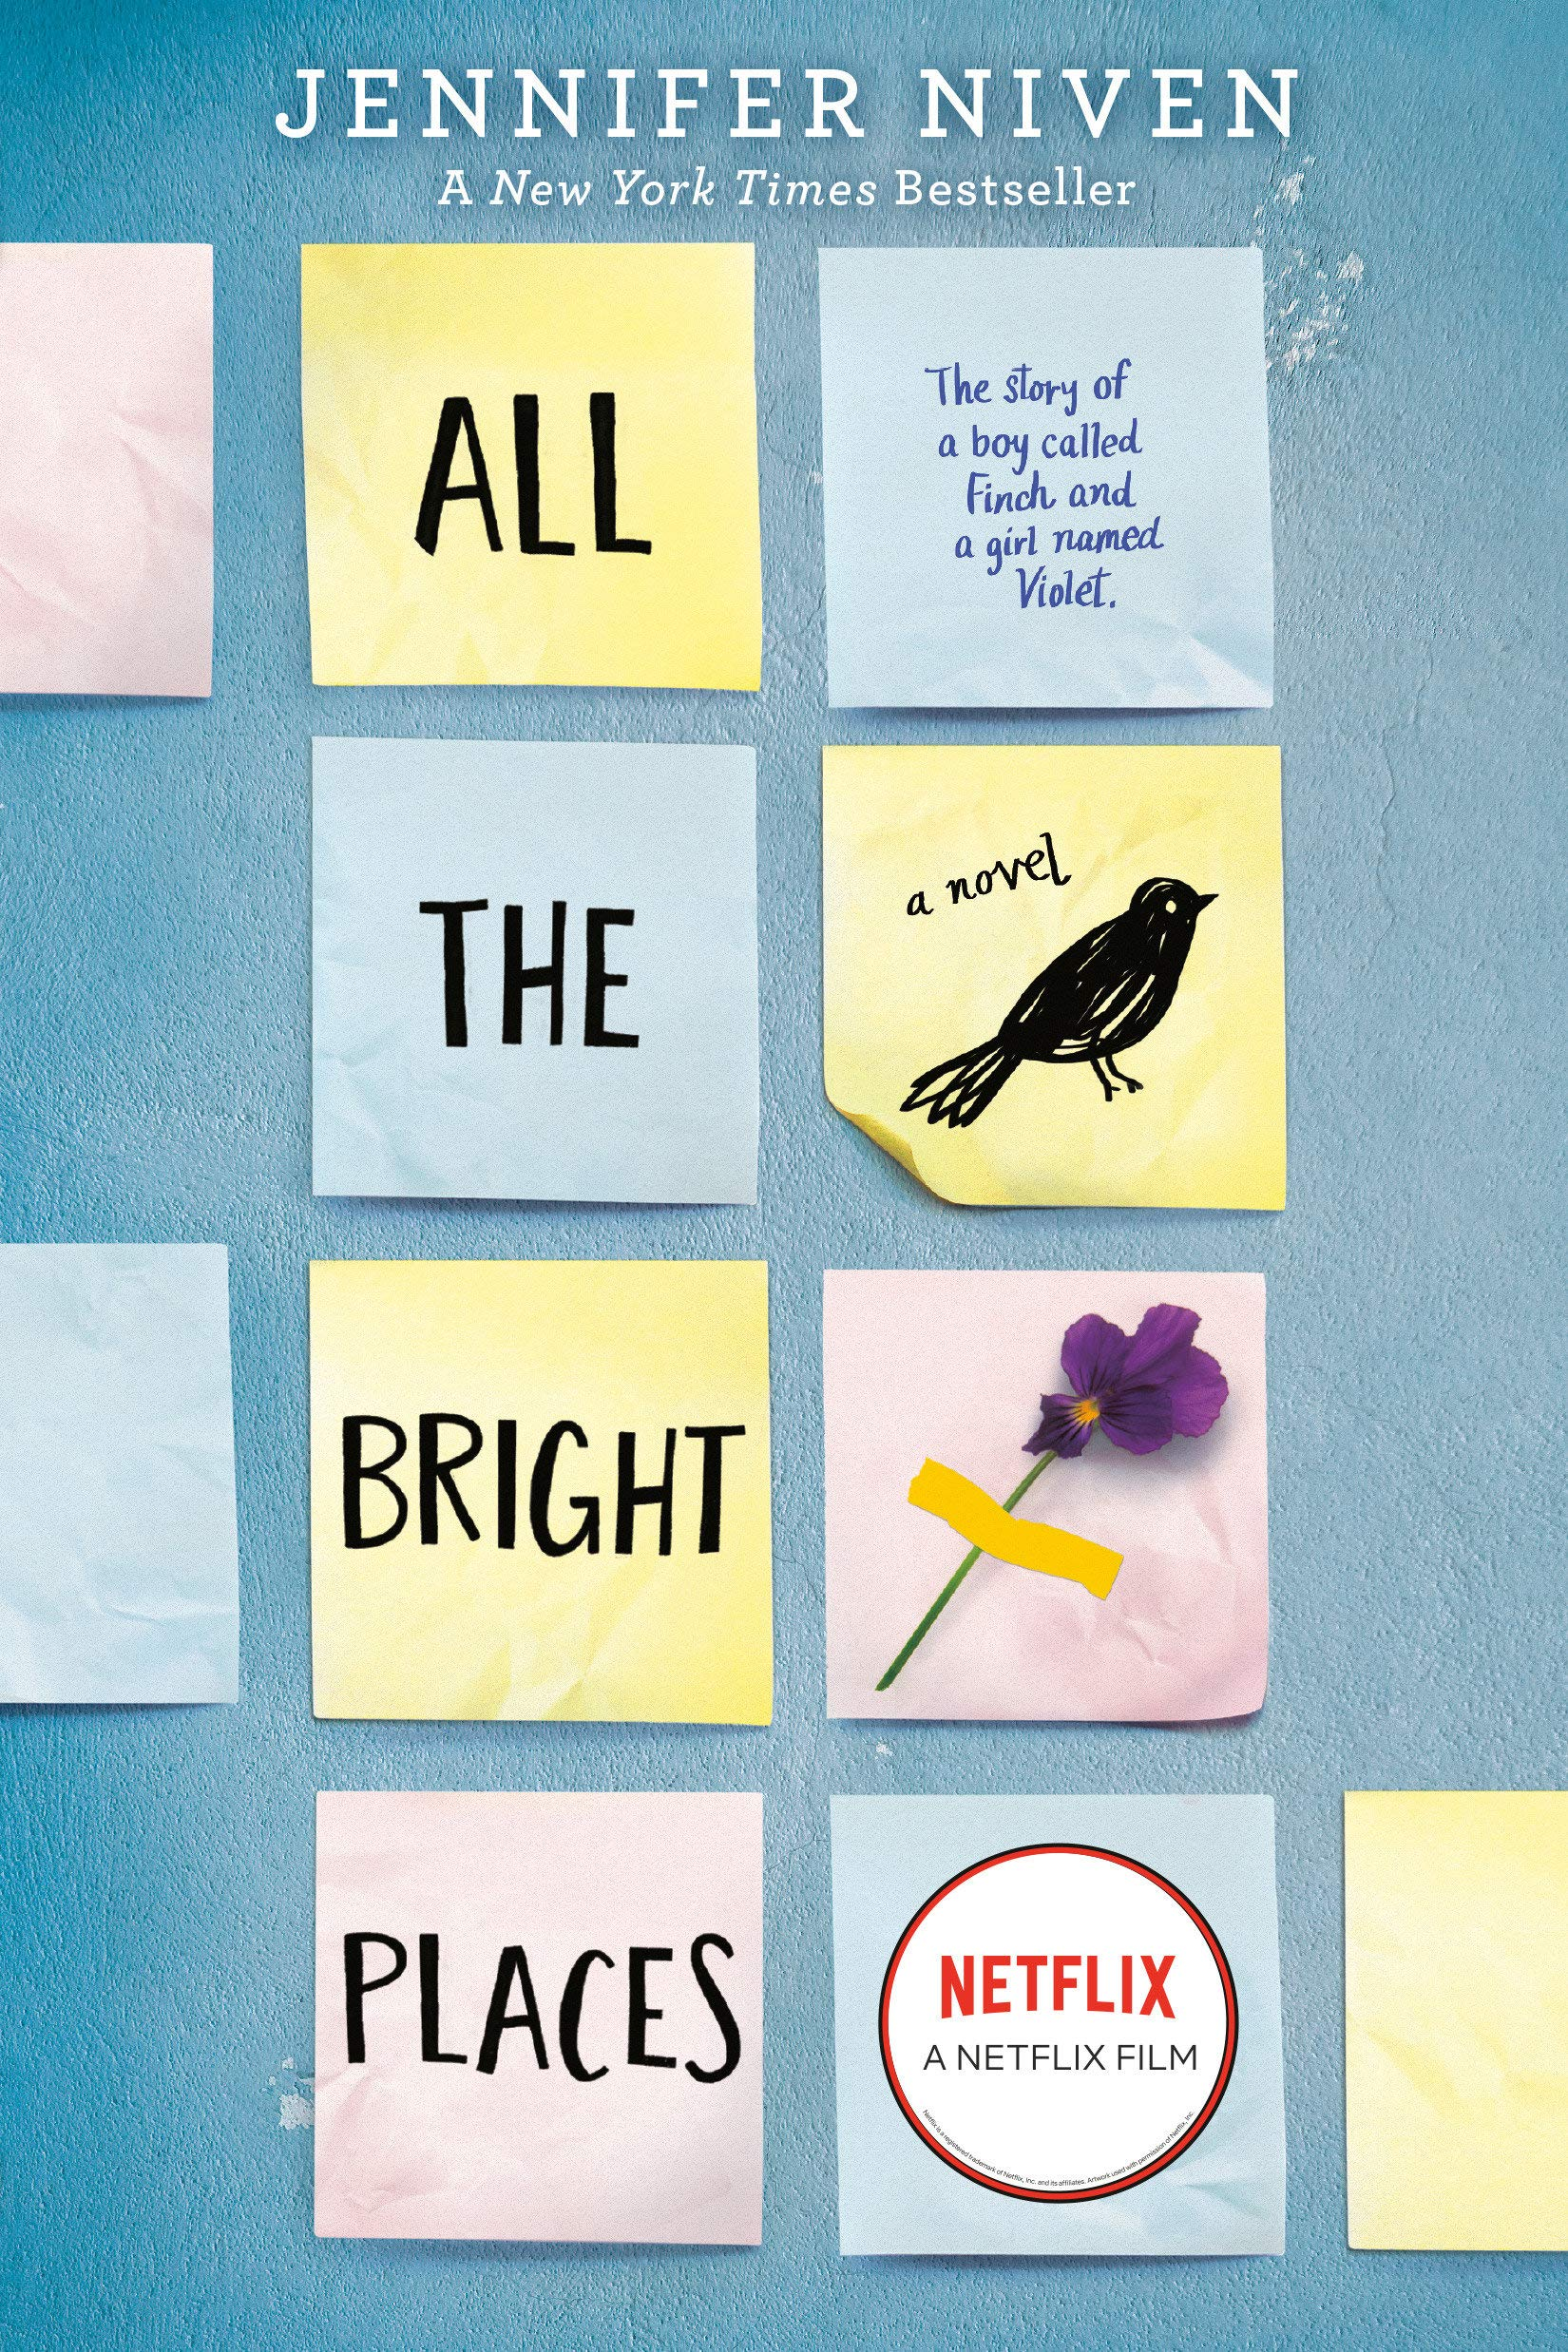 Amazon.com: All the Bright Places (9780385755917): Niven, Jennifer: Books